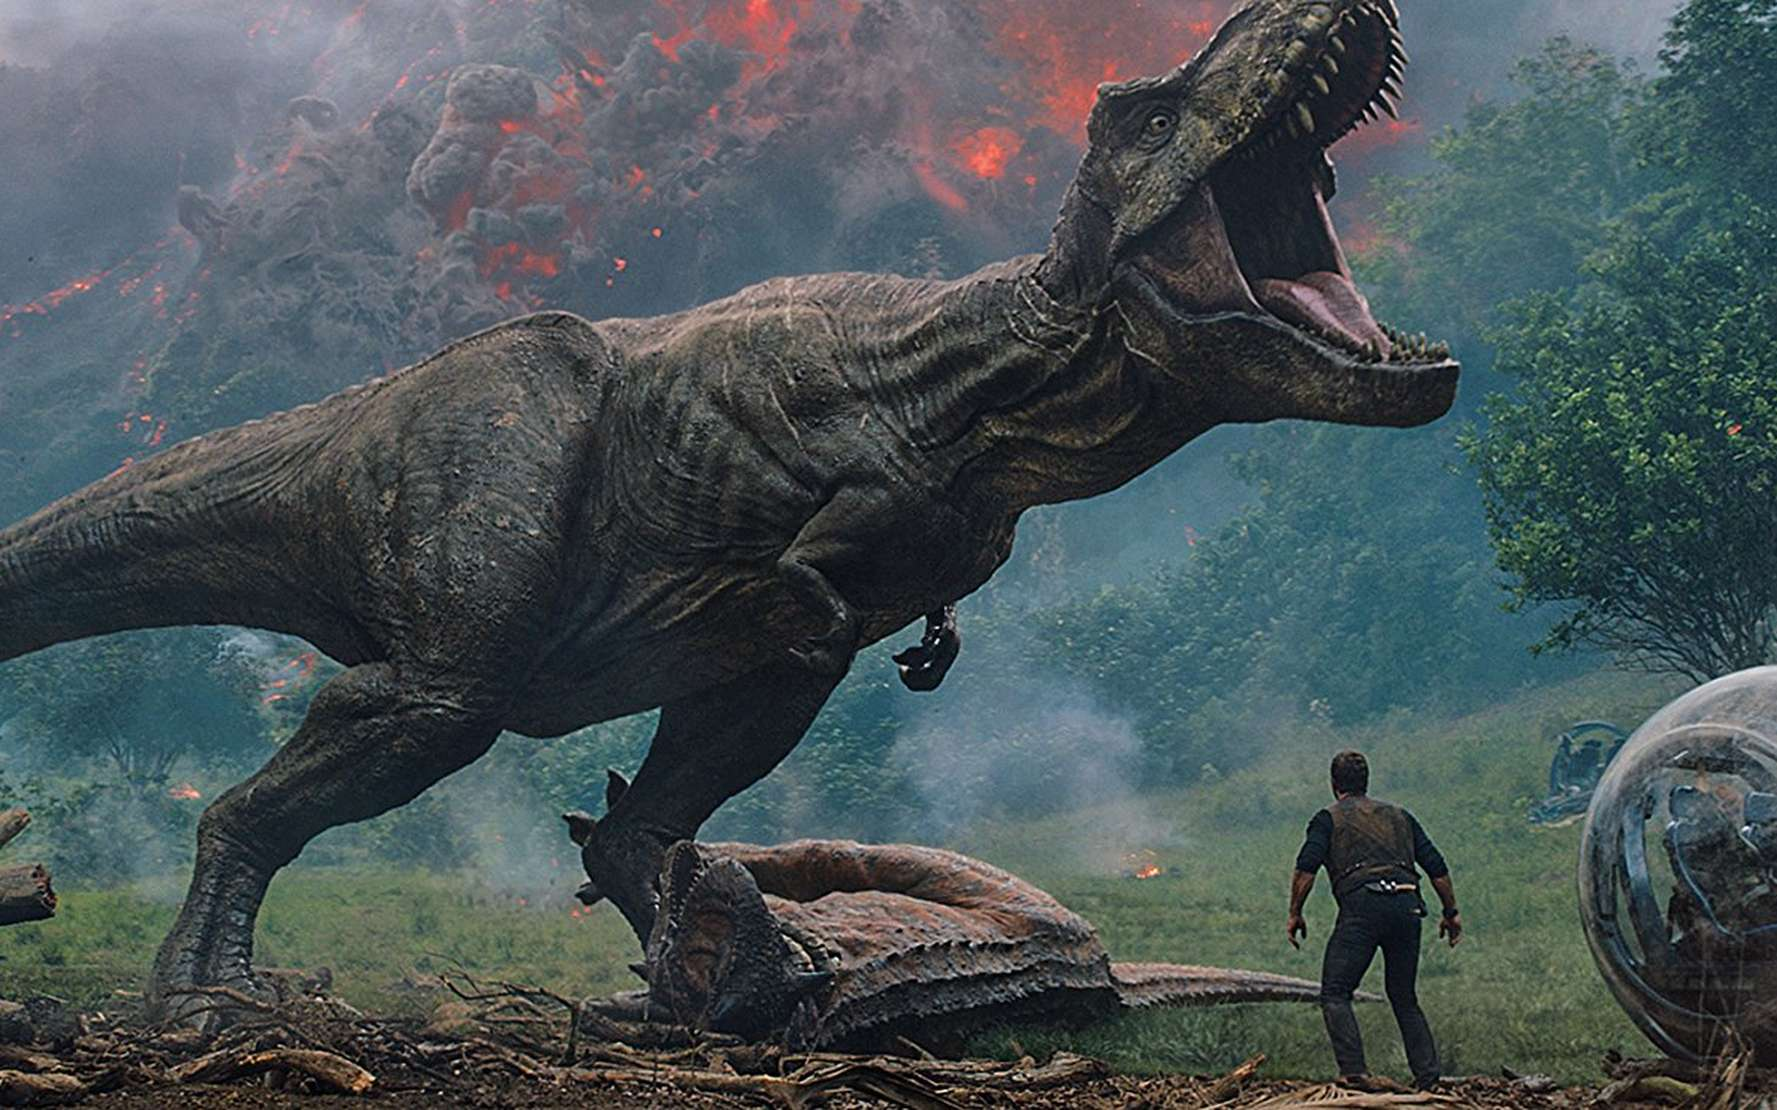 Les dinosaures terrorisent à nouveau les salles de cinéma dans Jurassic World: Fallen Kingdom. Si on ramenait les dinosaures à la vie, aura-t-on vraiment droit à un scénario catastrophe hollywoodien ? © Universal Pictures International France